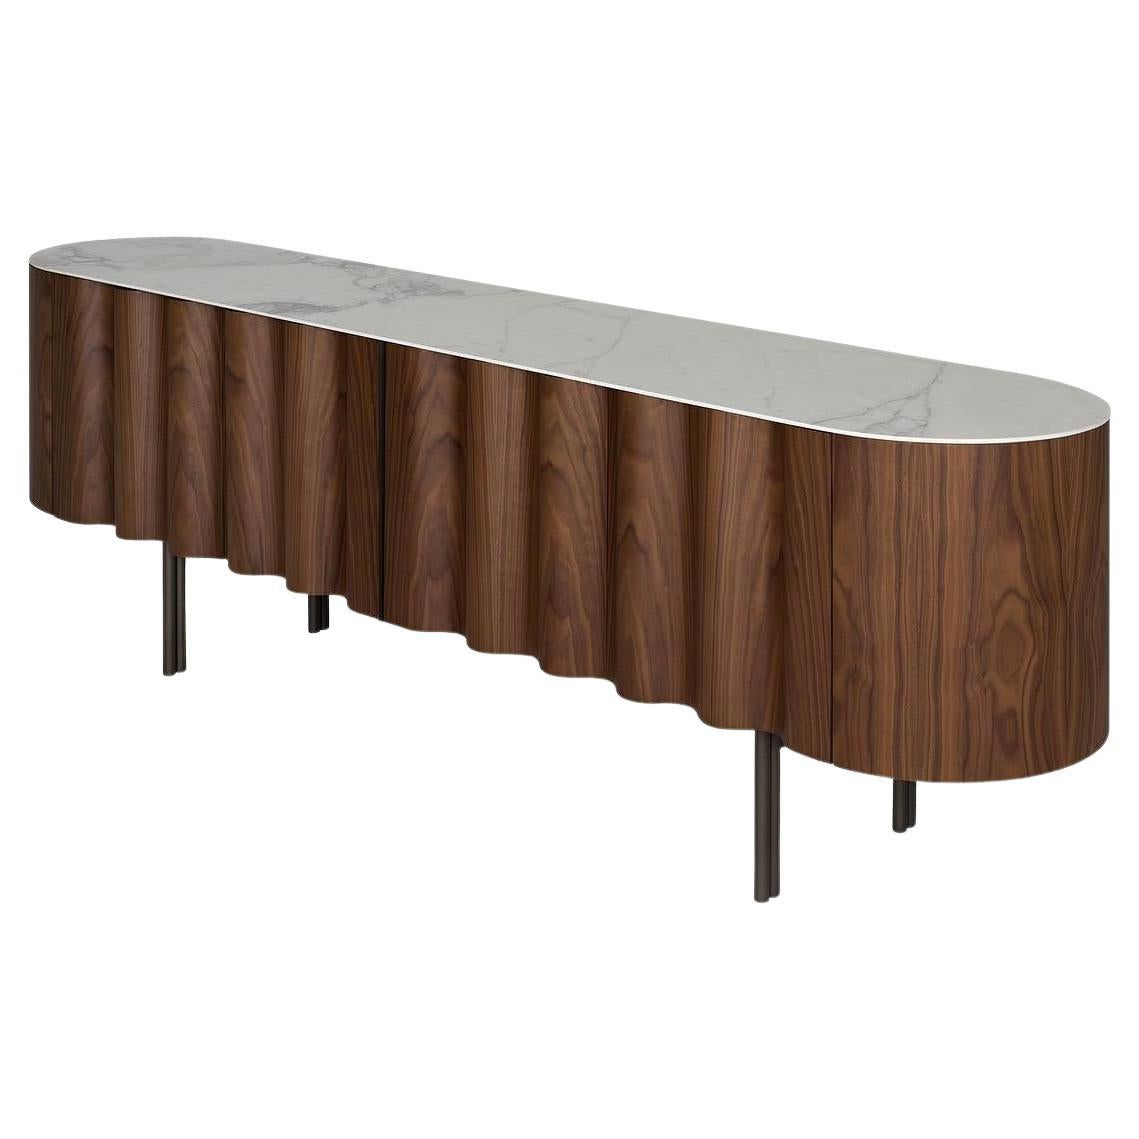 Contemporary Sideboard in Walnut and White Ceramic Top